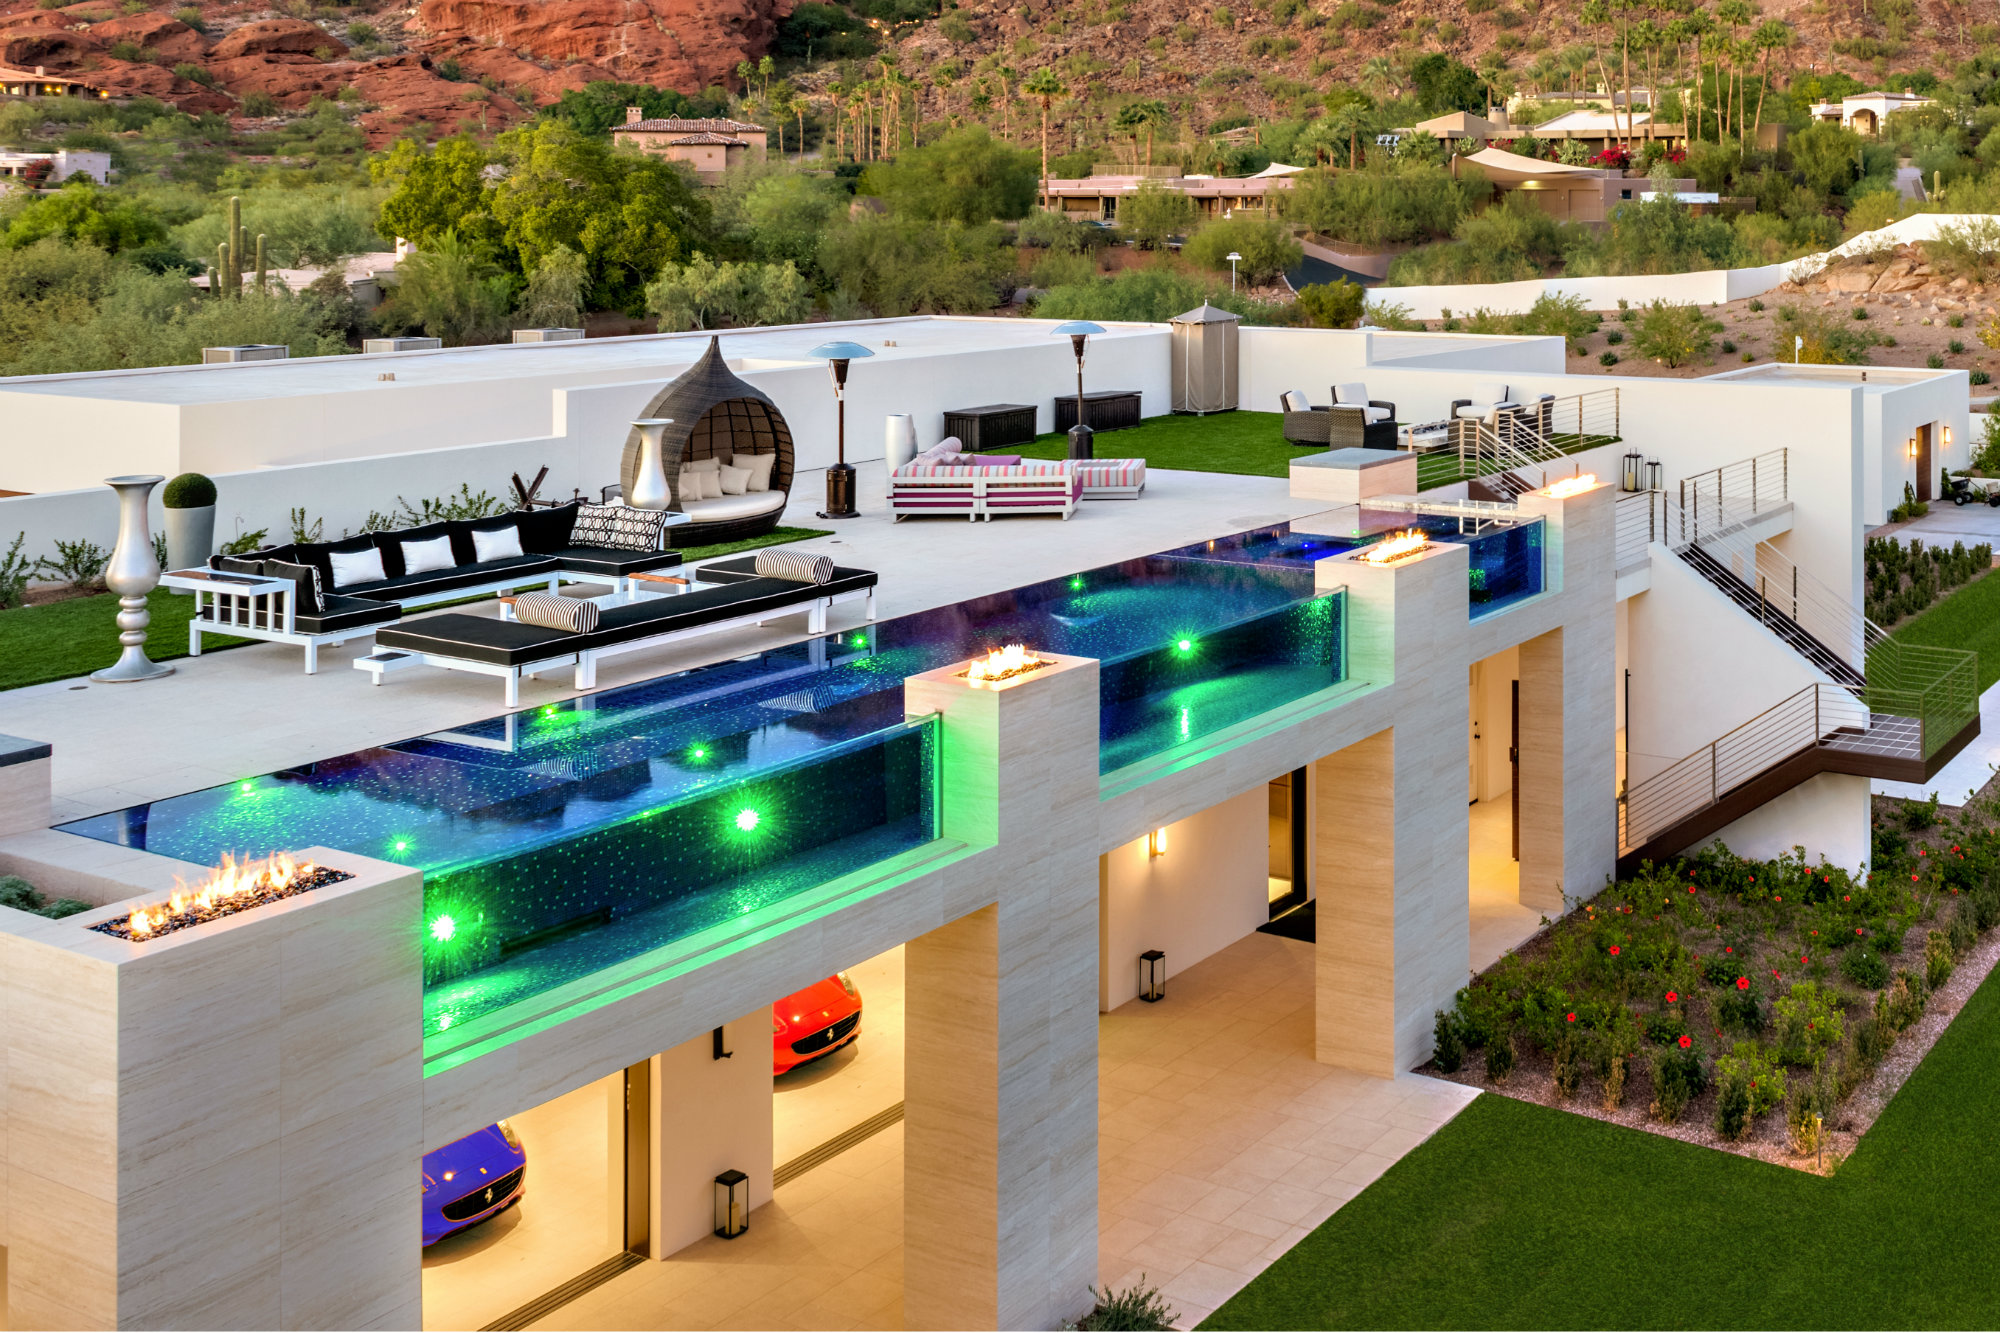 Cooling Influence See This Rooftop All Gl Tile Masterpiece By Phoenix Area Red Rock Pools And Spas Pool Spa News Construction